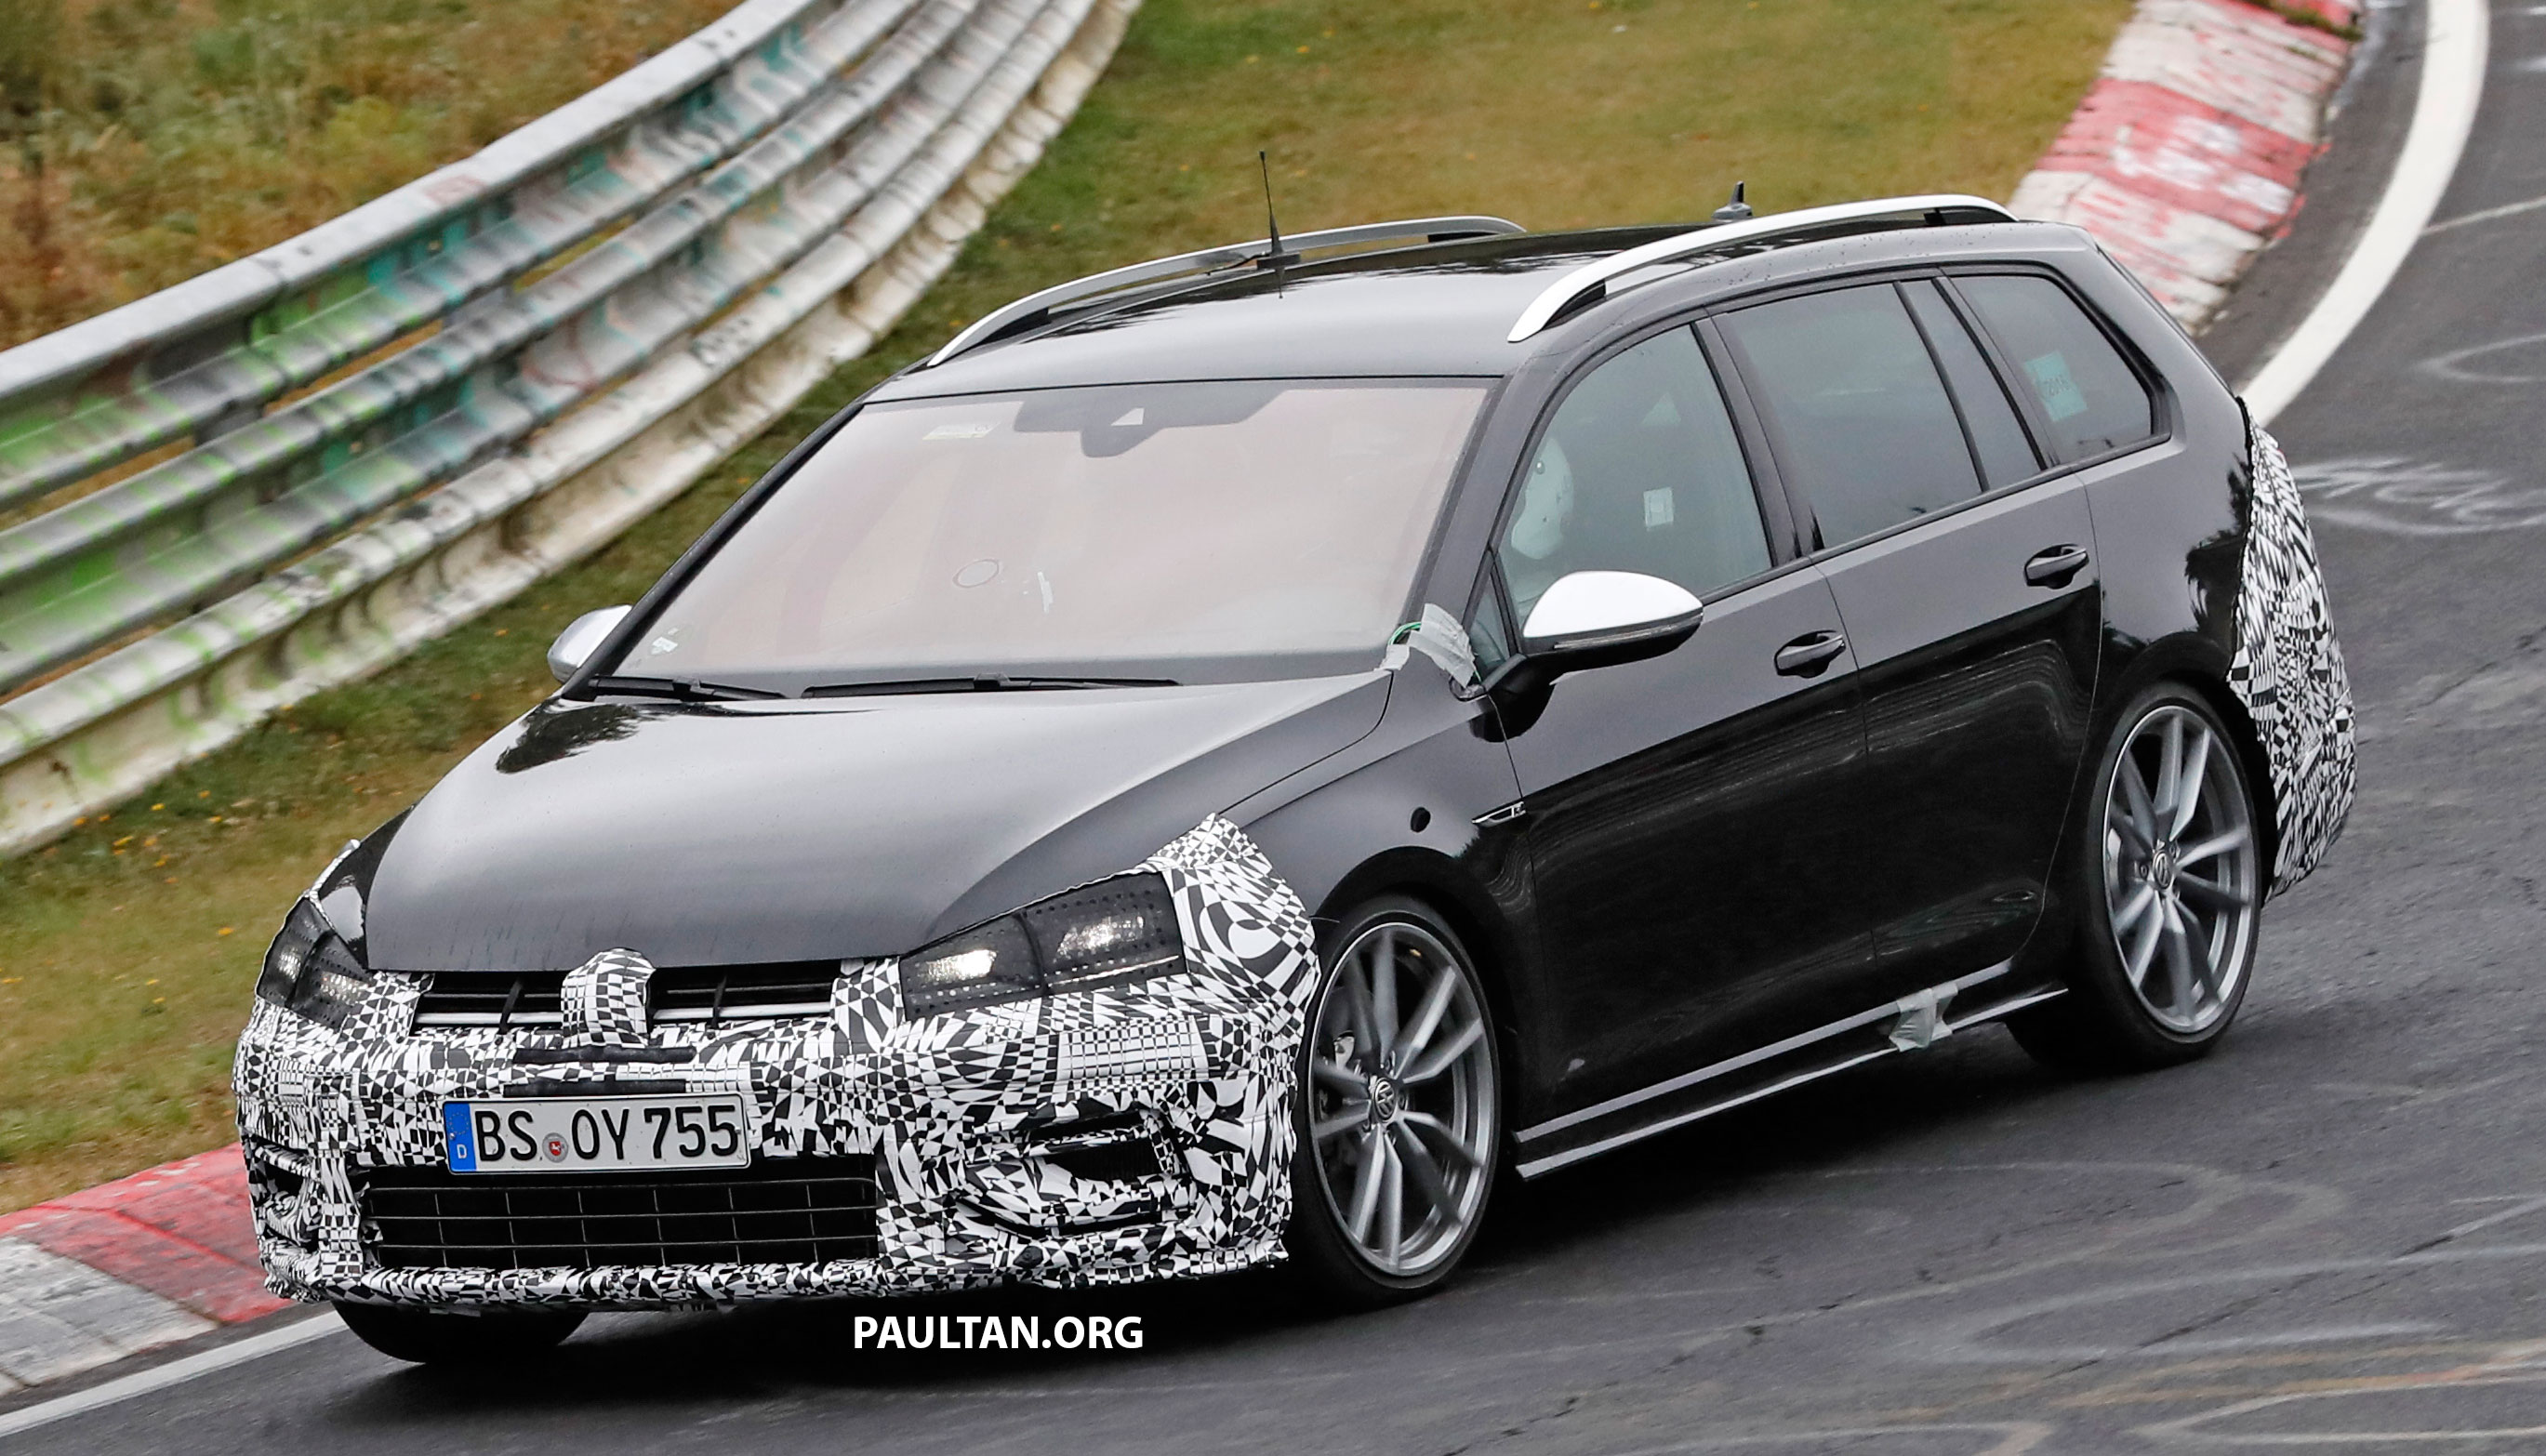 spyshot volkswagen golf r mk7 facelift versi wagon dilihat sedang giat diuji di litar. Black Bedroom Furniture Sets. Home Design Ideas